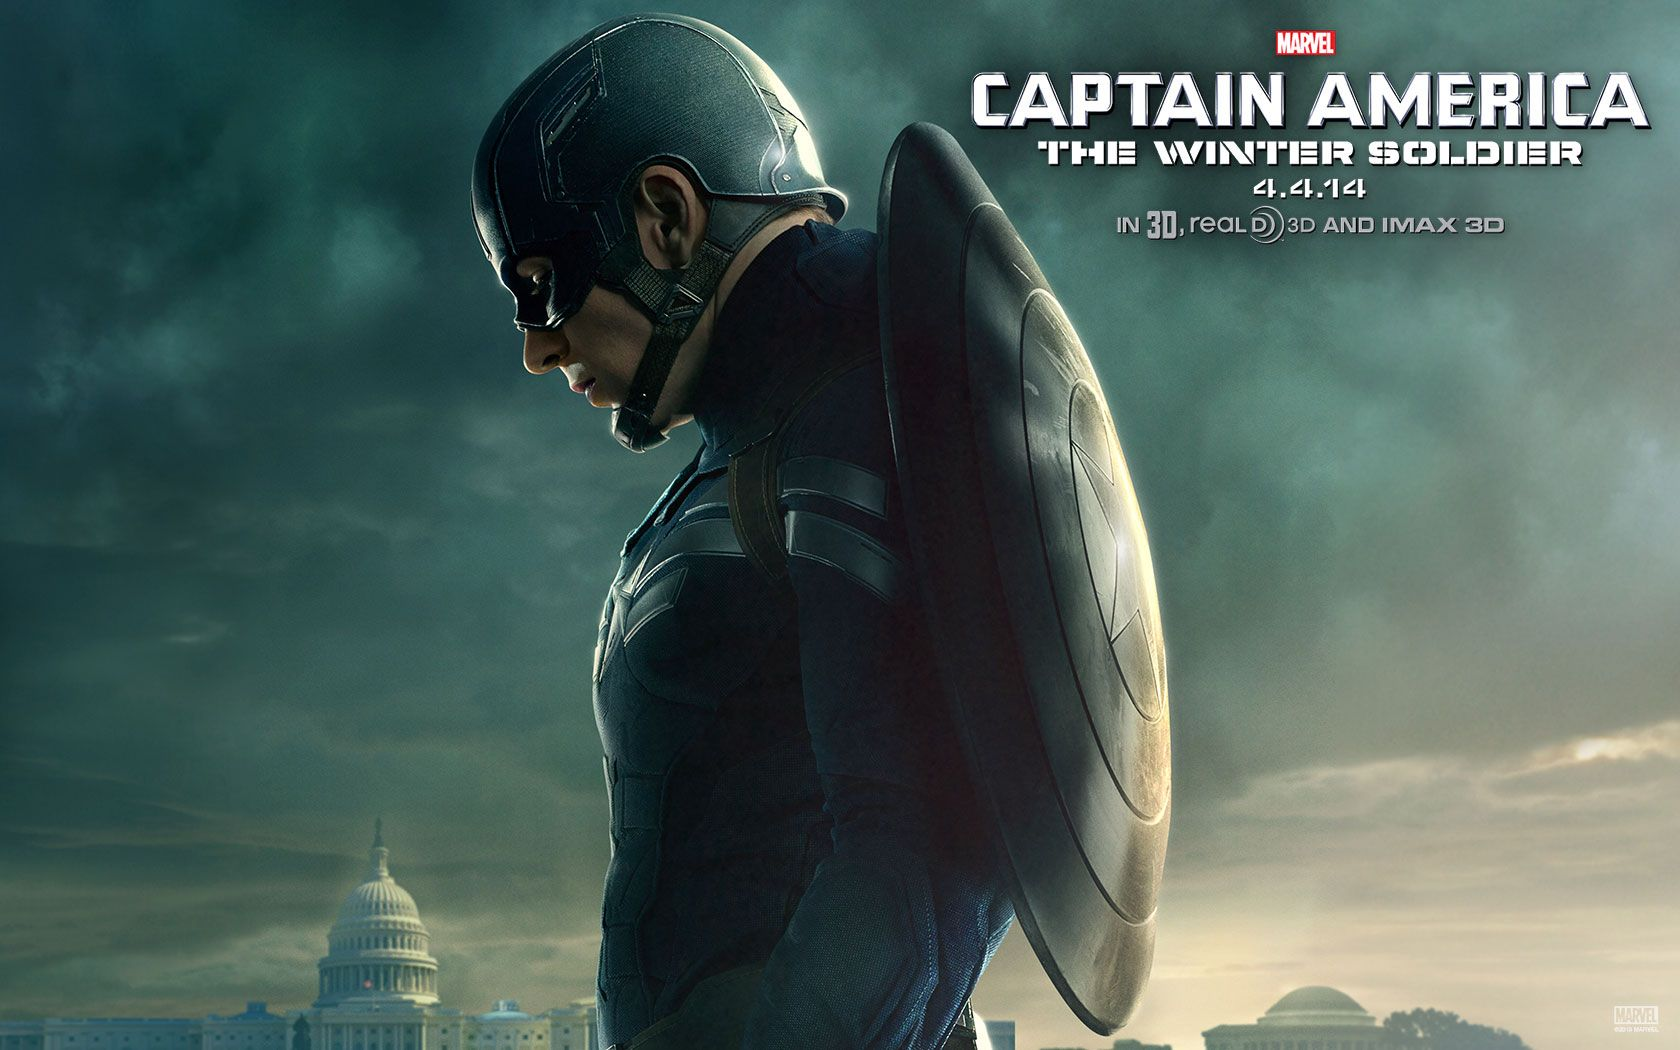 Hd wallpaper of captain america - Captain America Wallpapers Best Wallpapers